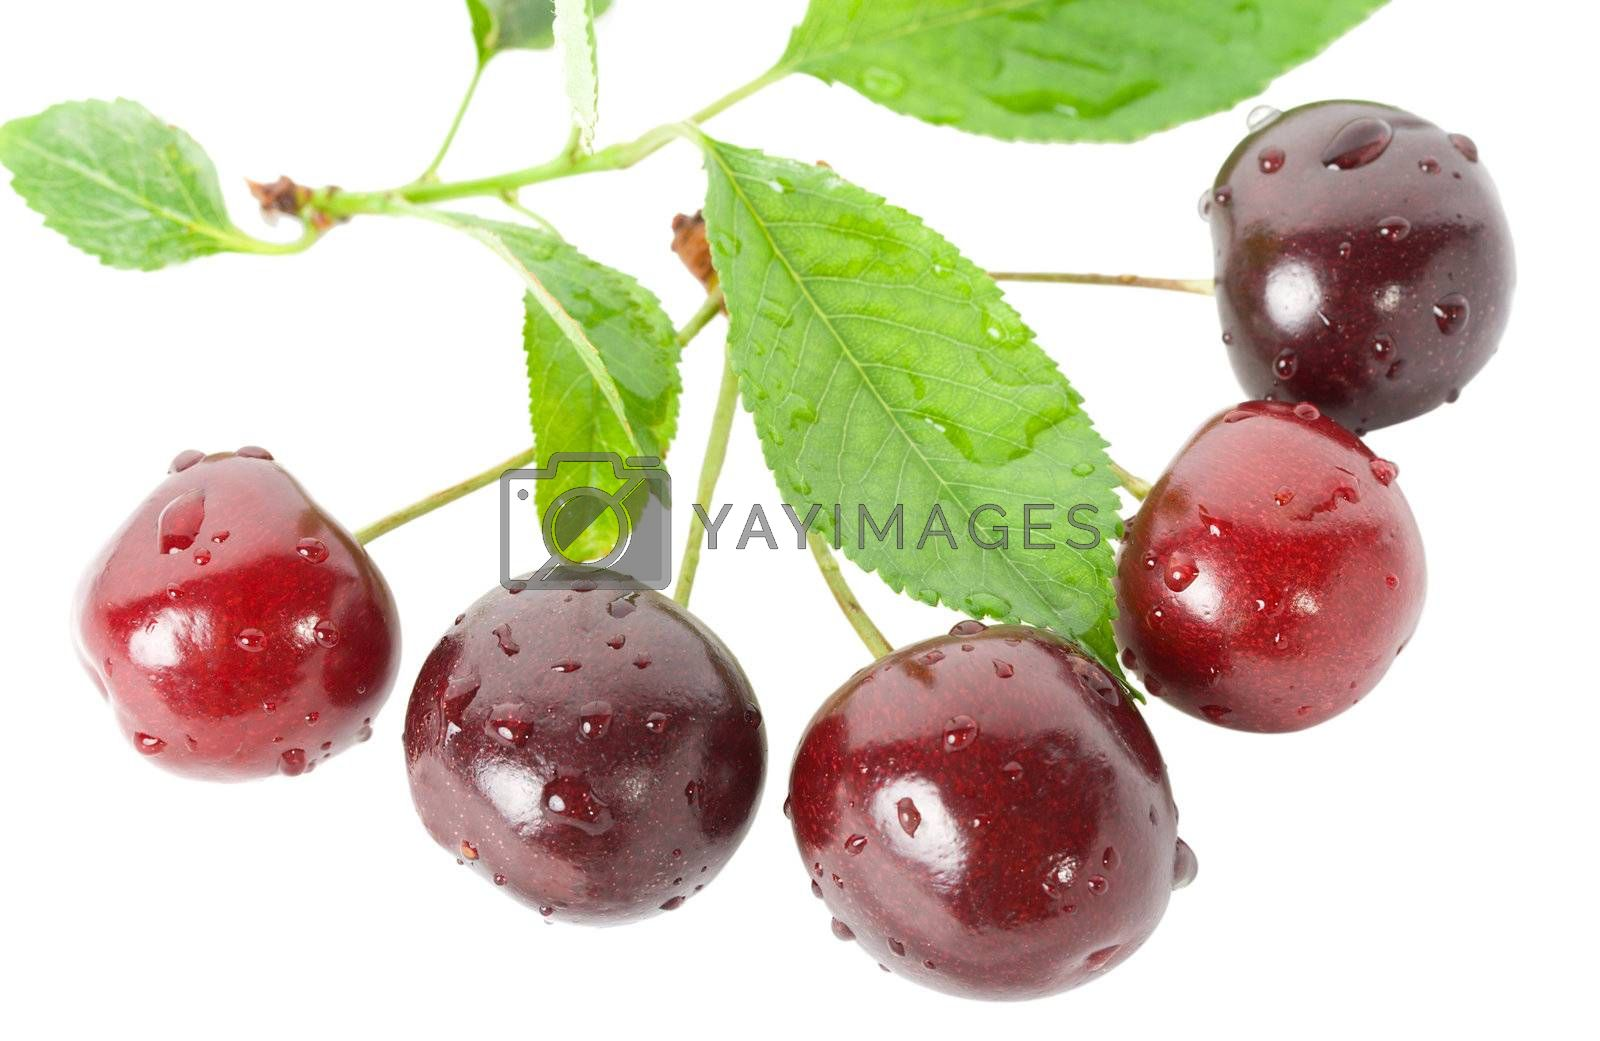 ripe cherries with leaves, isolated on white